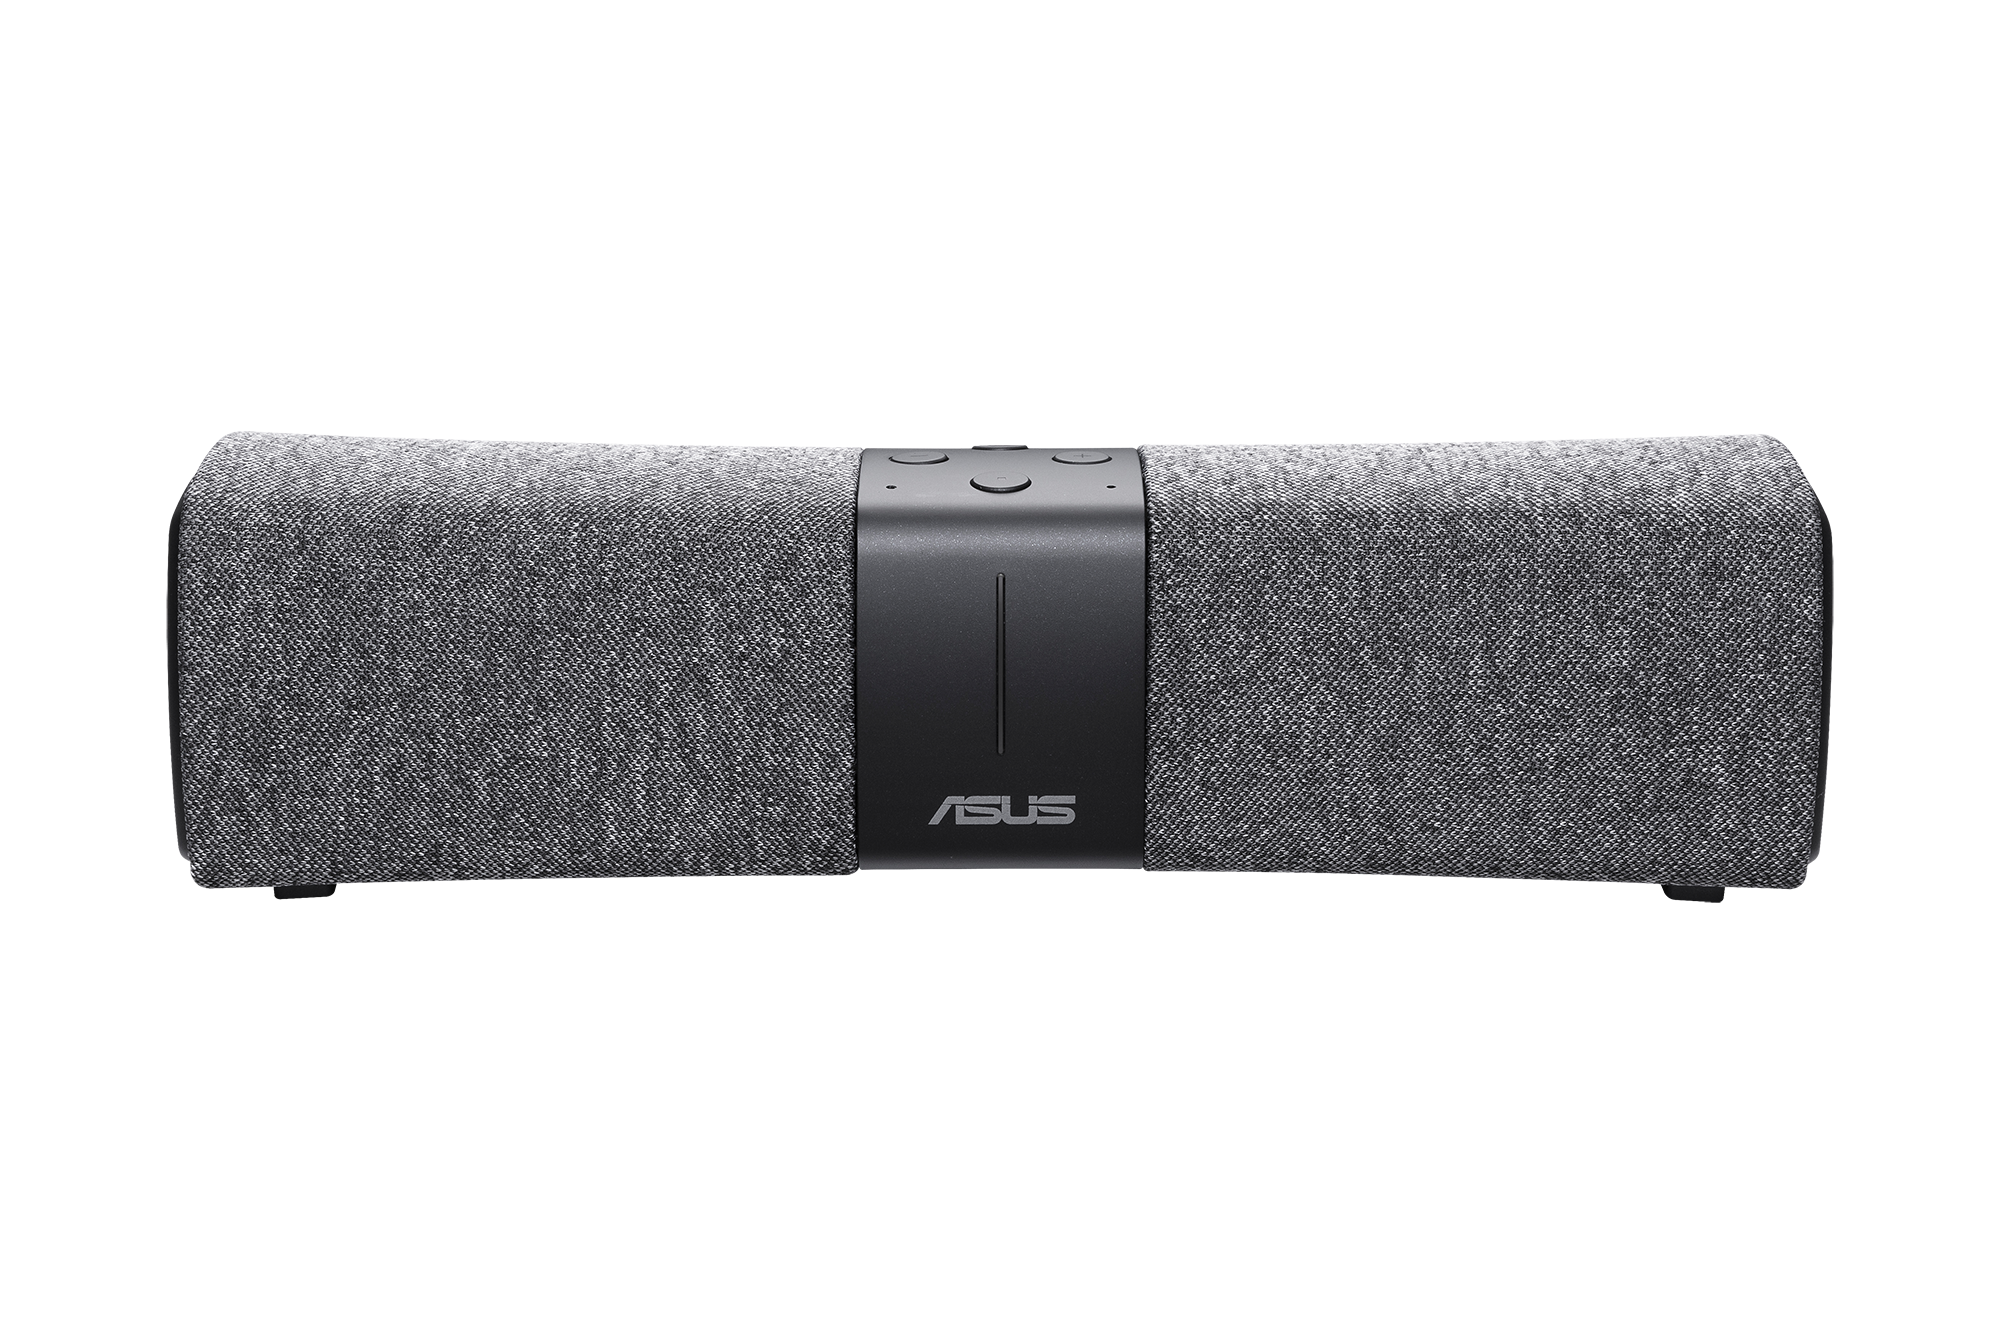 ASUS Showcases New Connectivity Devices at CES 2018